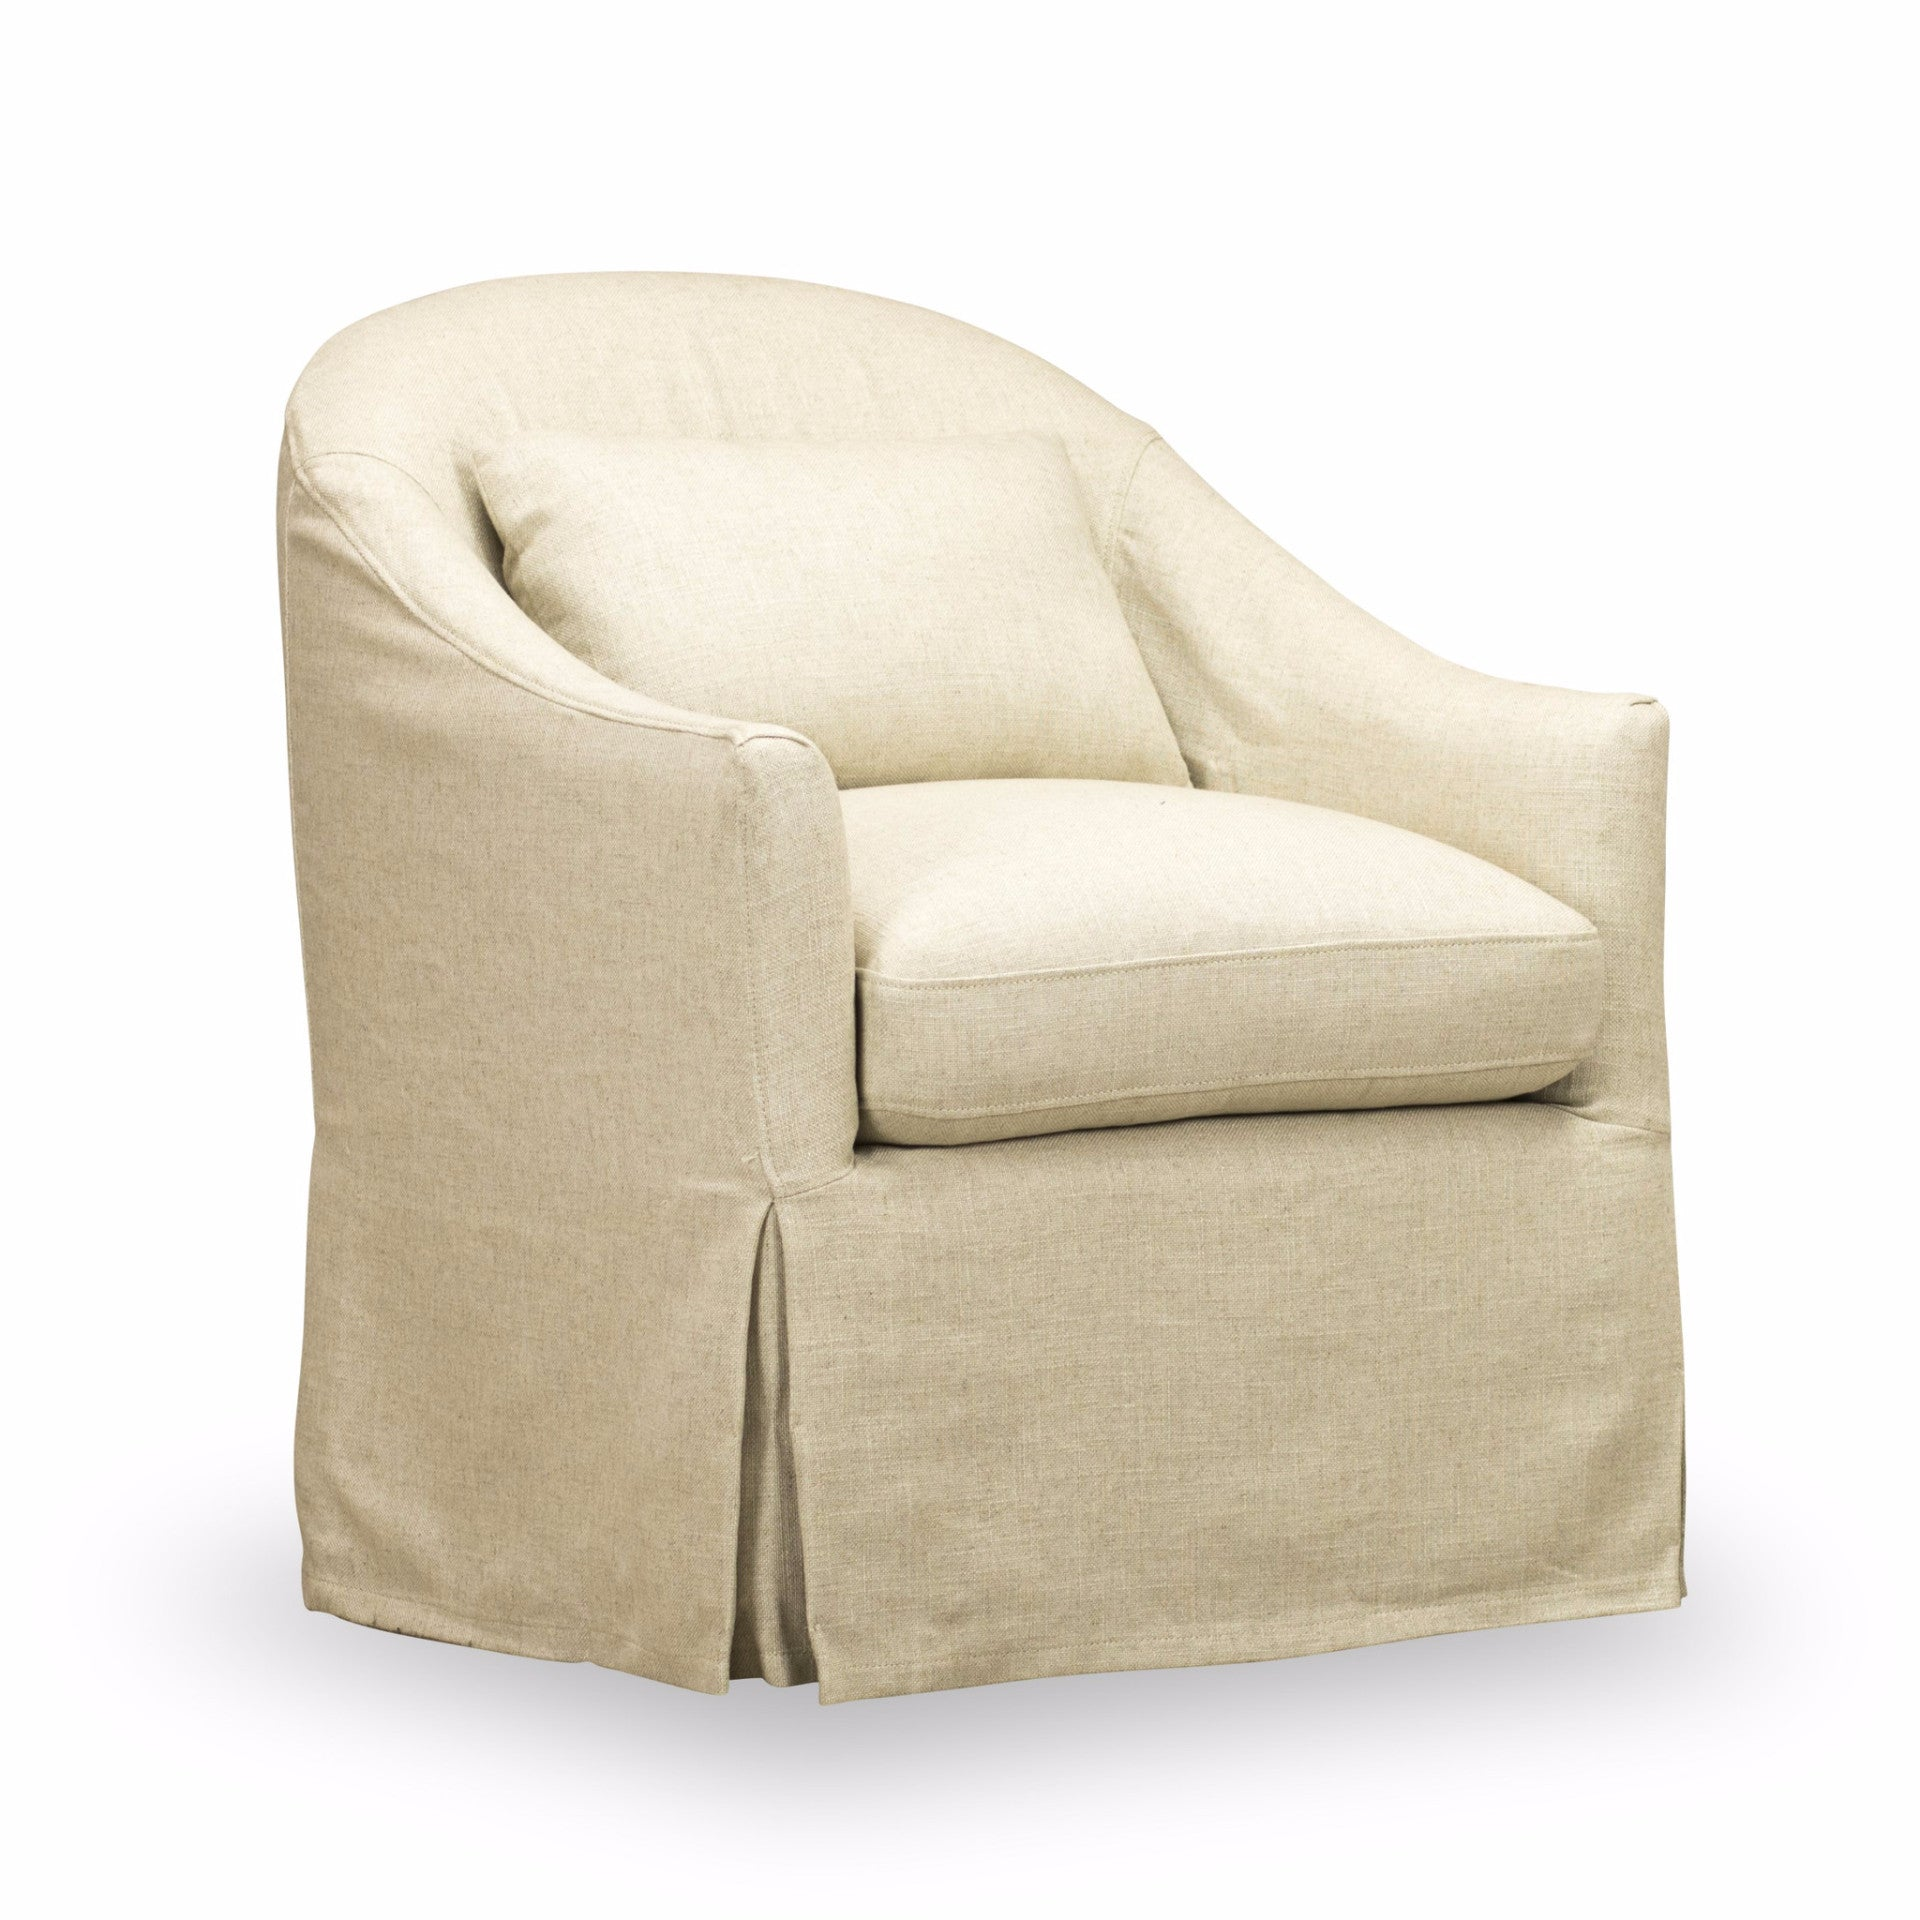 BECKY SLIP COVERED SWIVEL CHAIR Natural Ecru